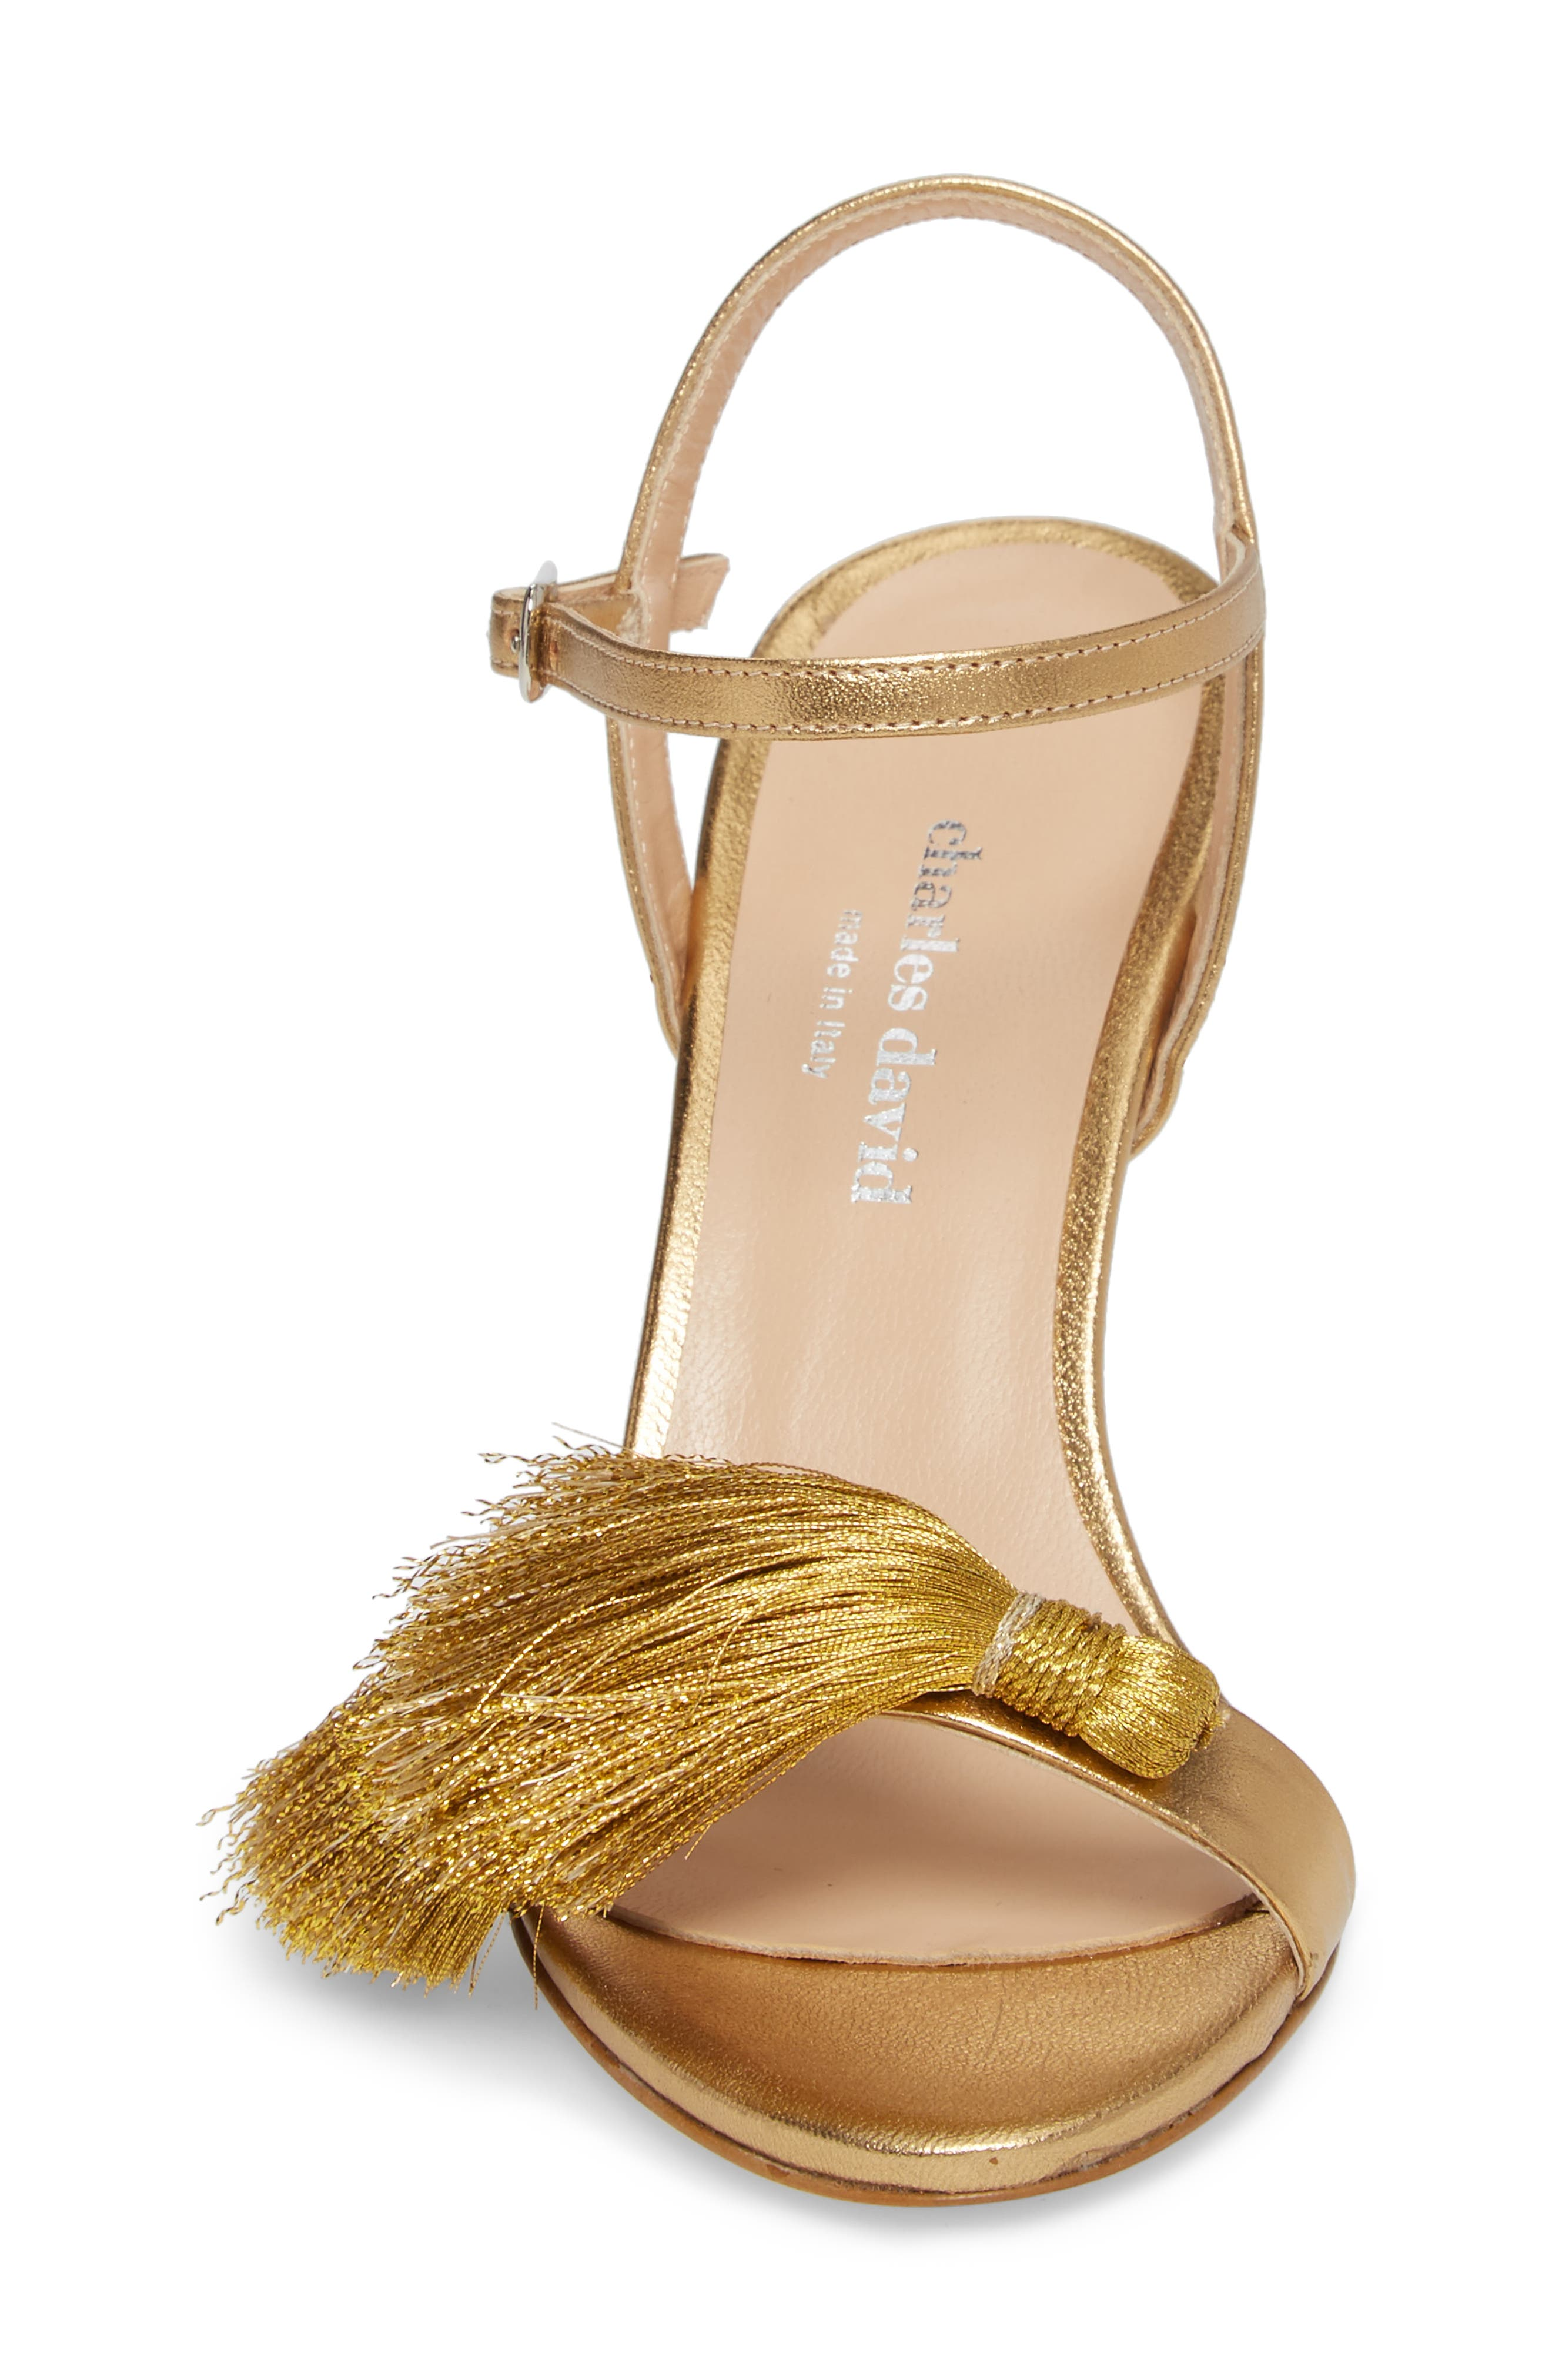 Sassy Tassel Sandal,                             Alternate thumbnail 4, color,                             GOLD LEATHER